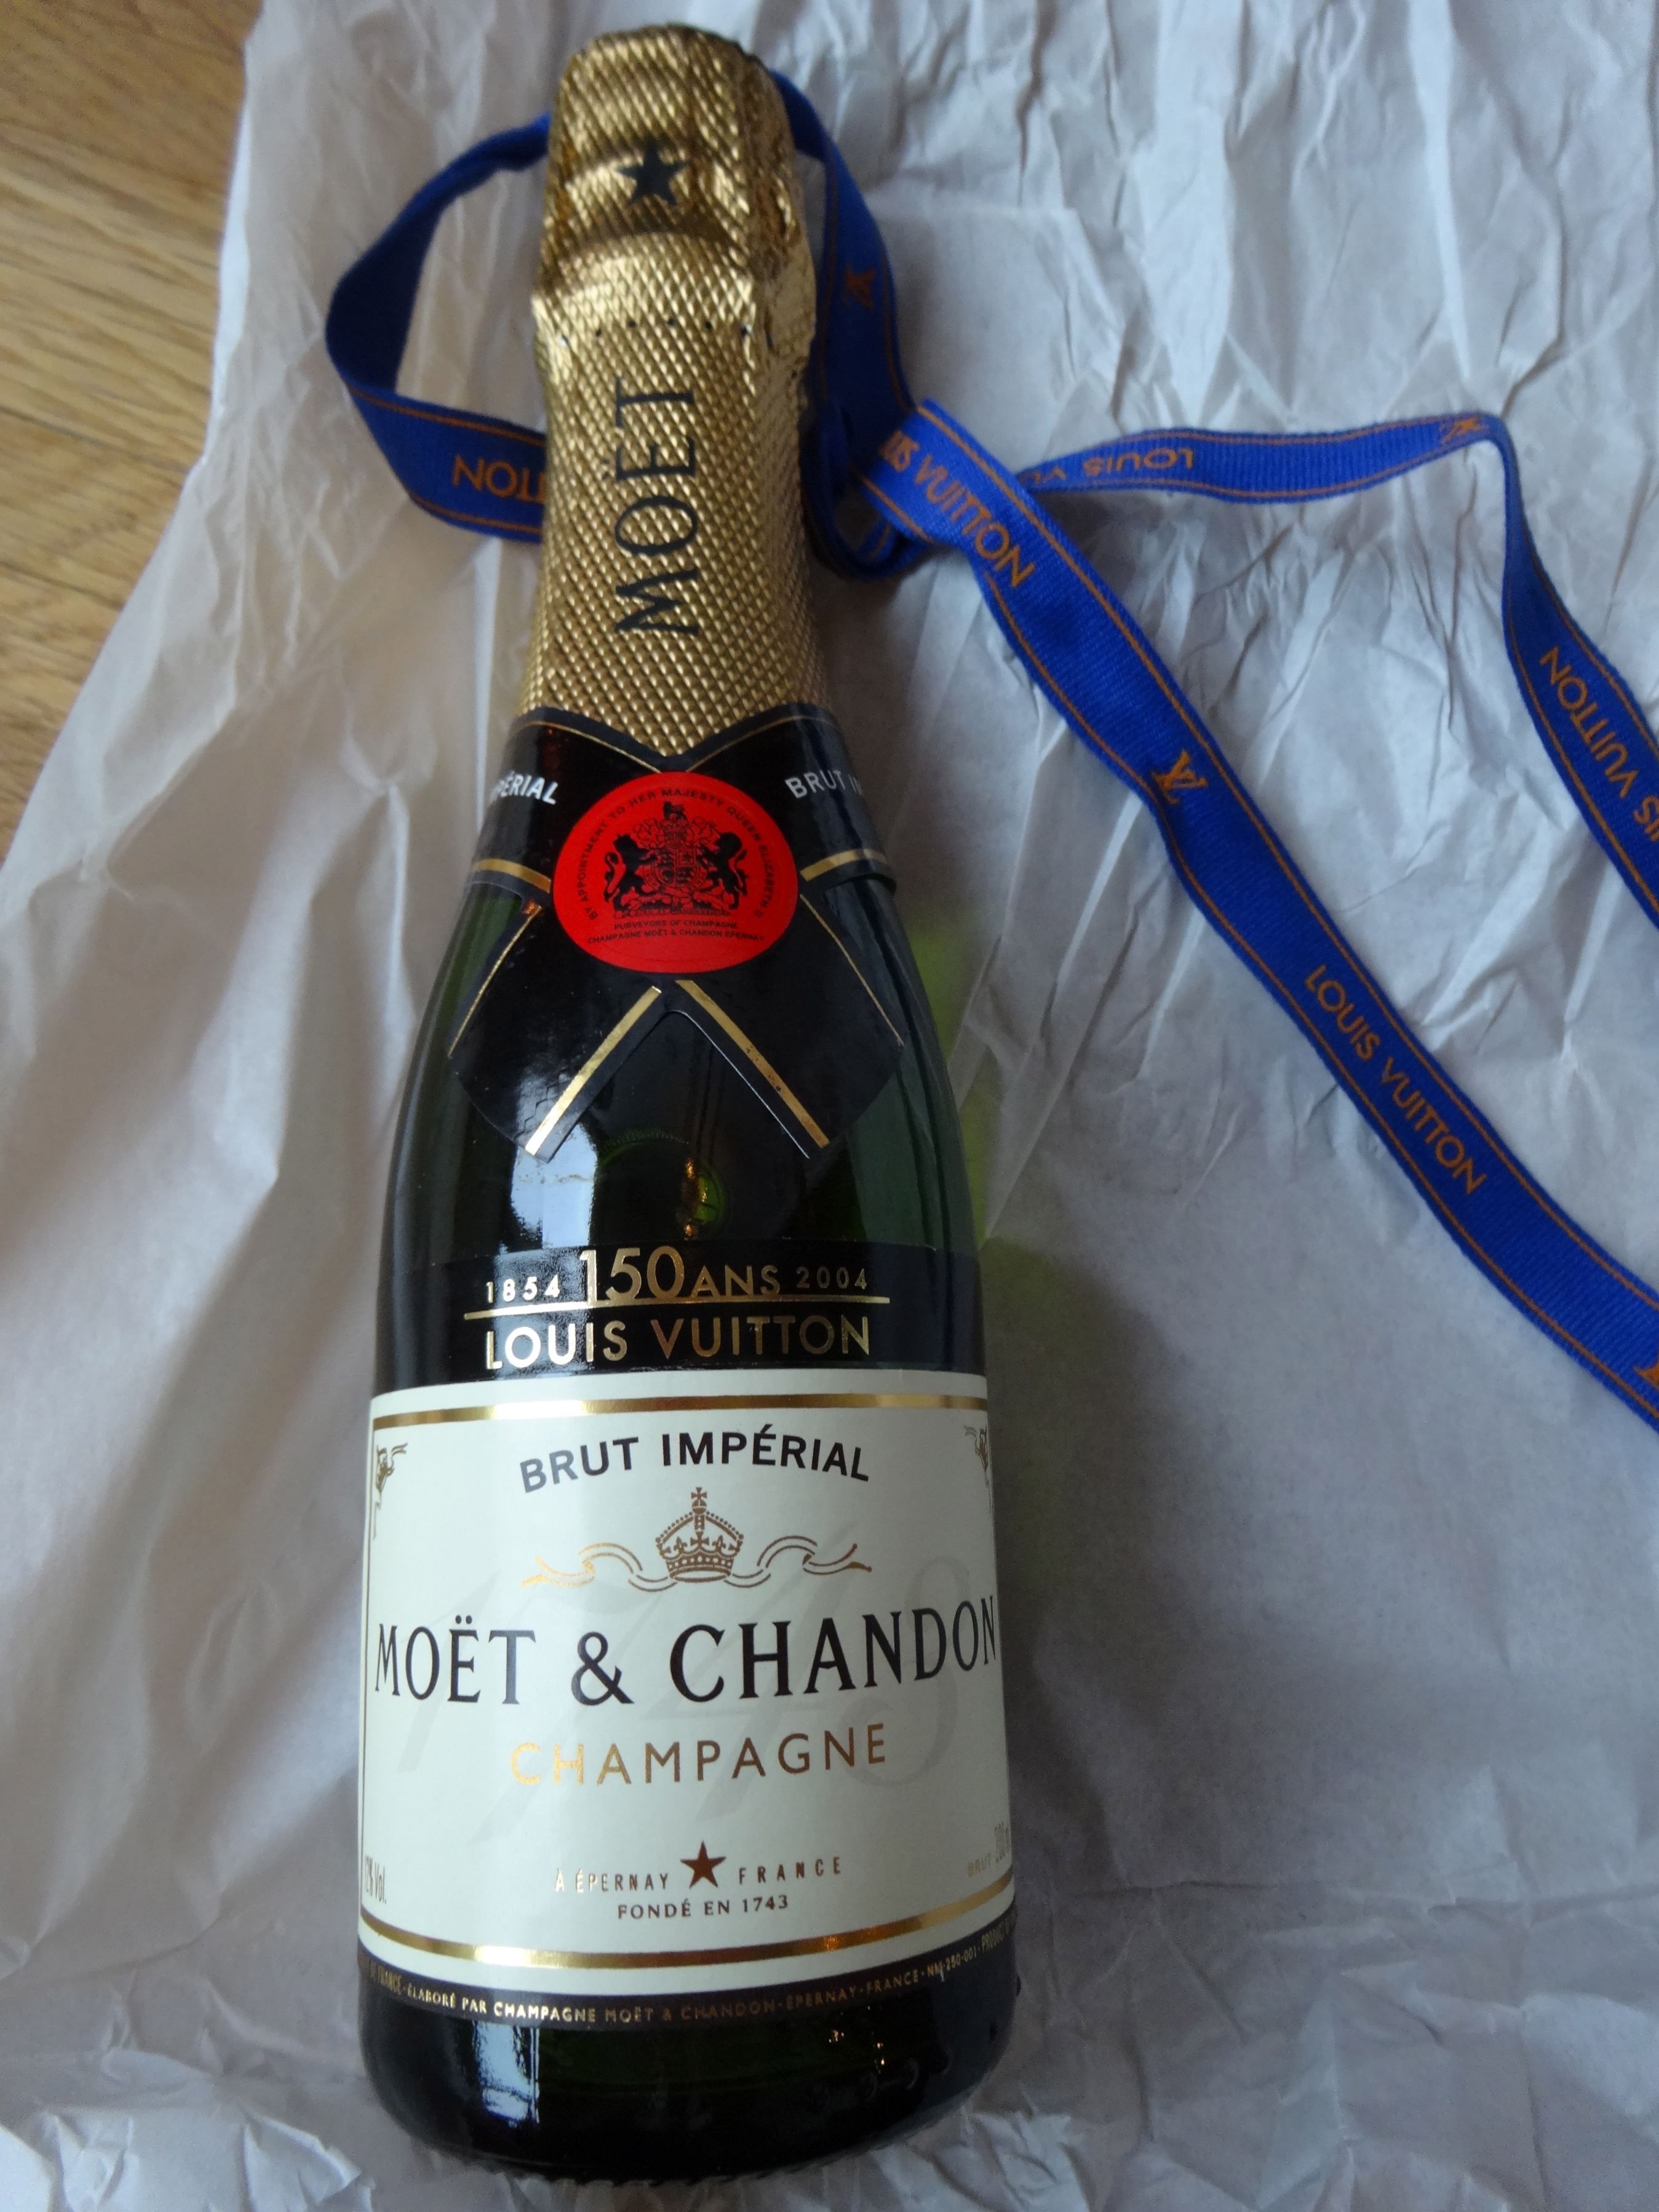 Moet & Chandon 2004 Brut Imperial